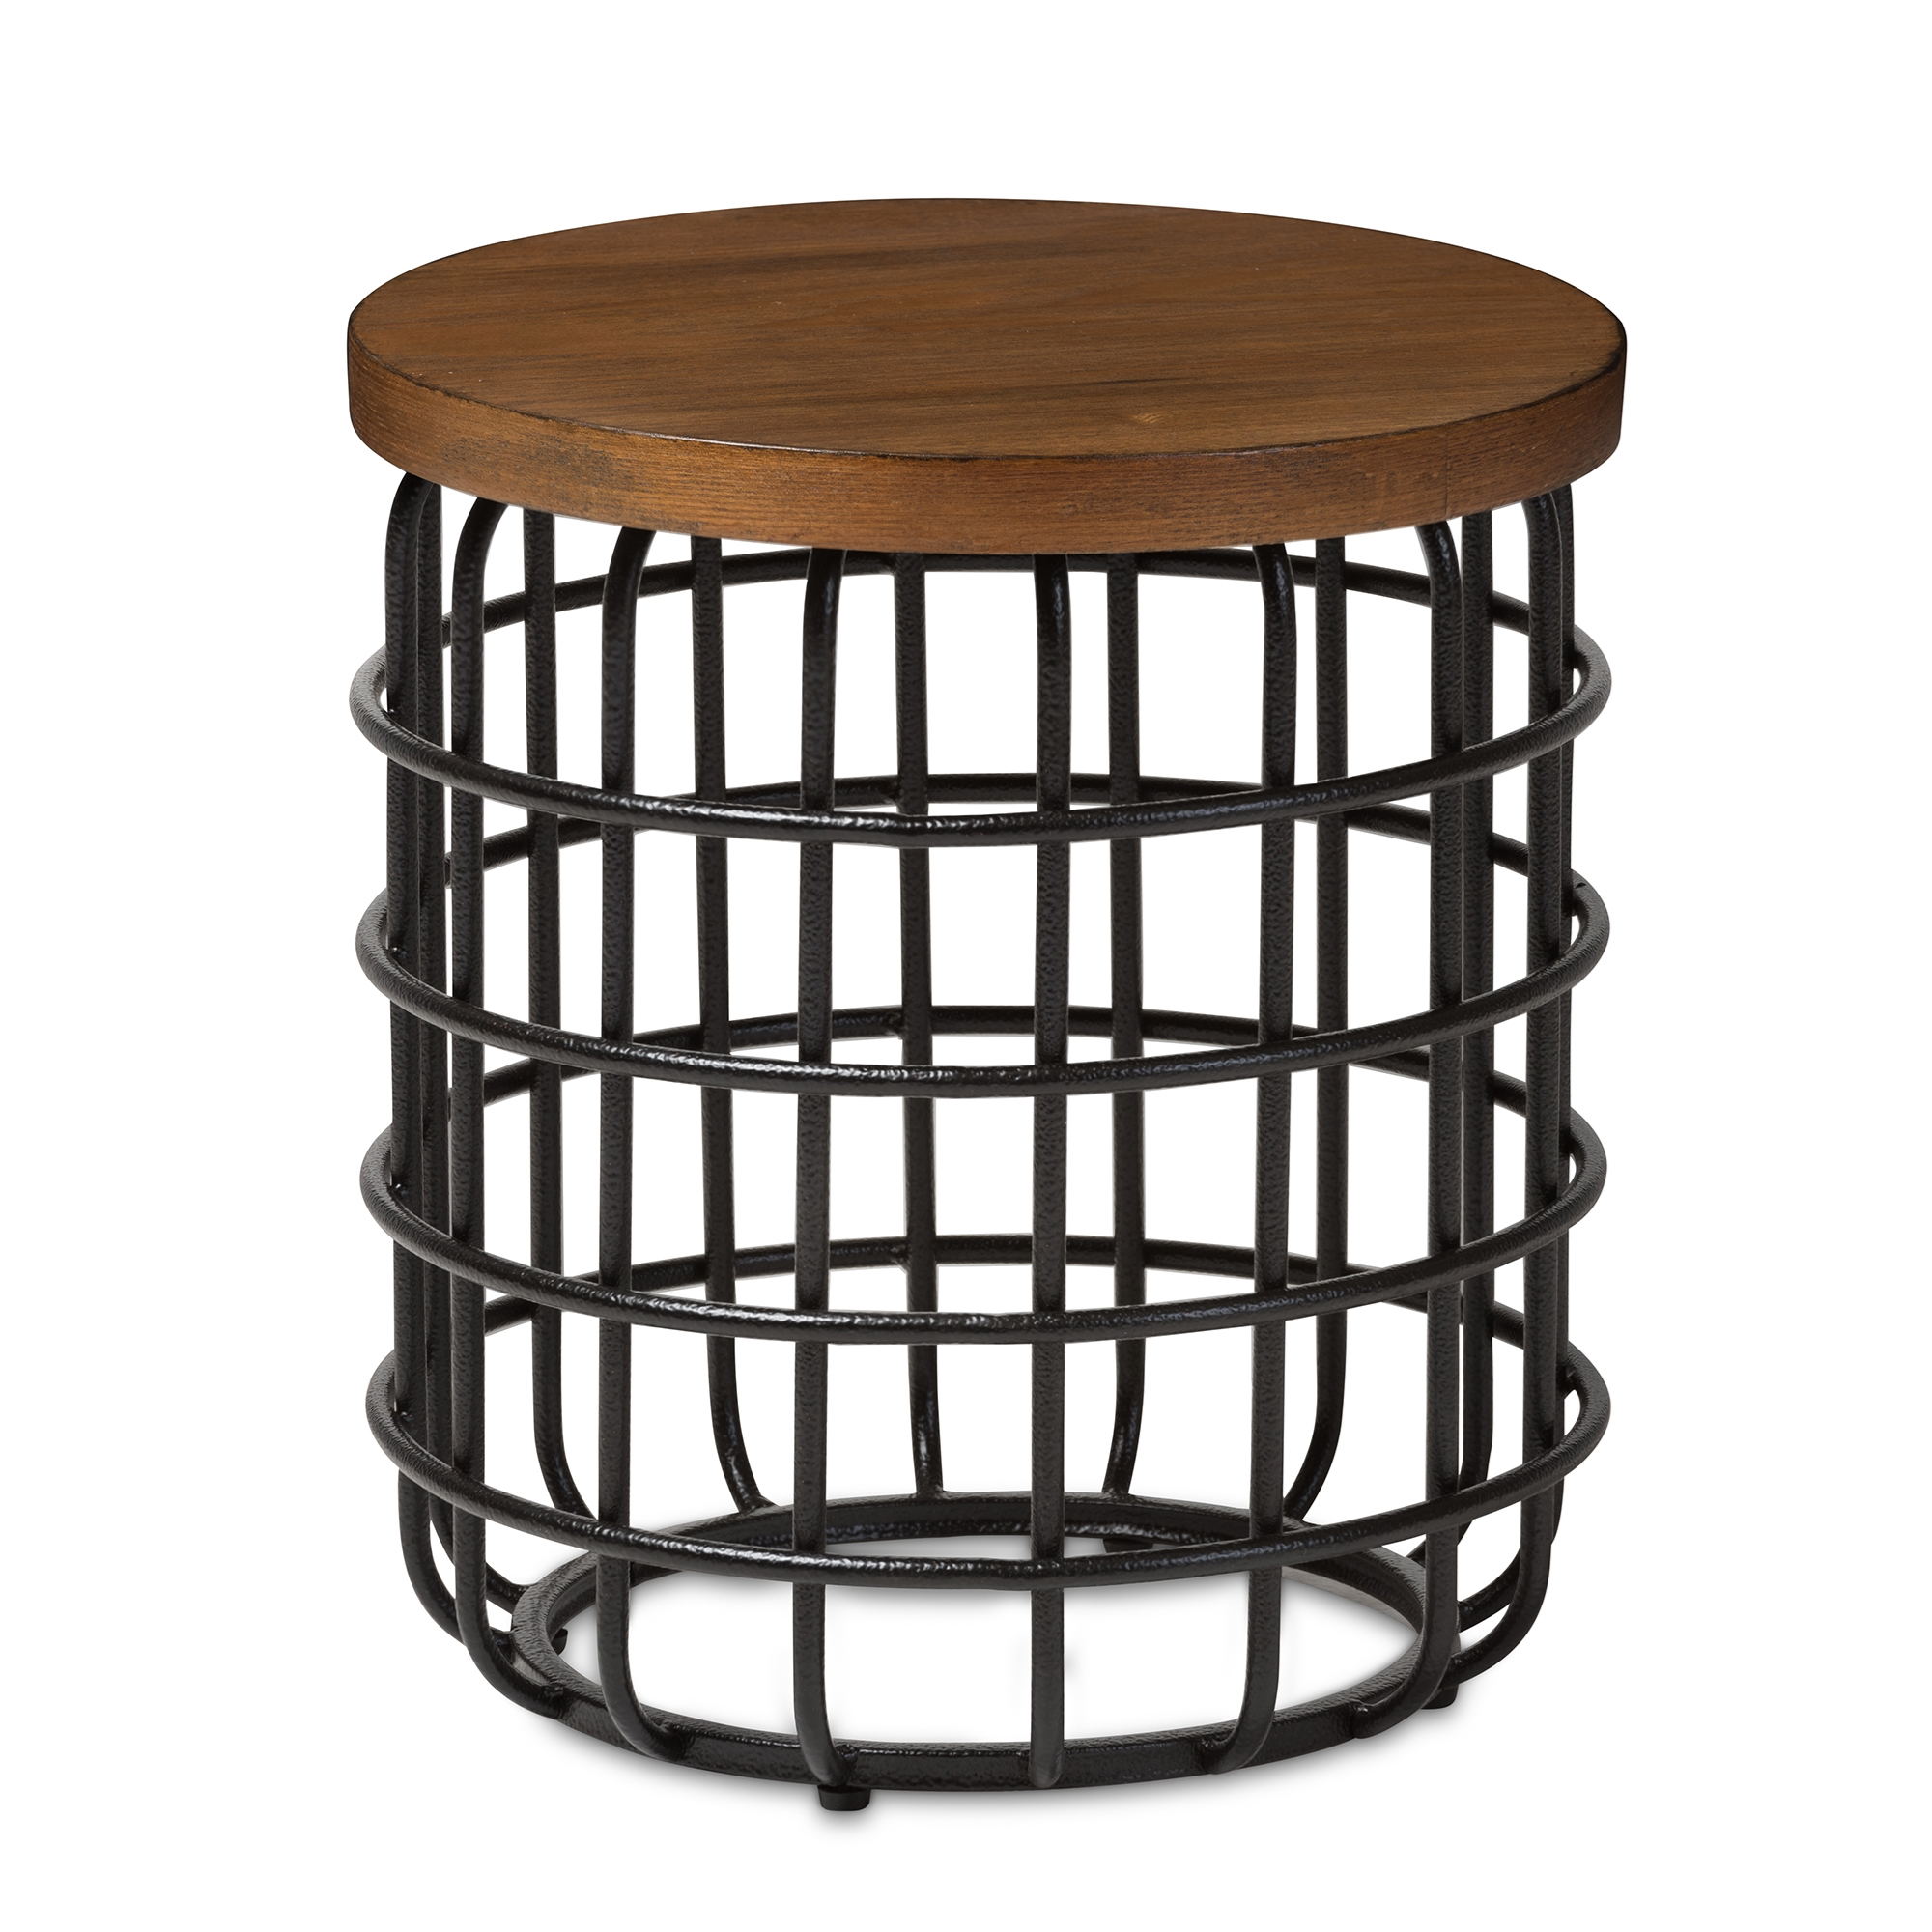 baxton studio carie rustic industrial style antique black textured metal accent table finished distressed wood vintage lucite triangle side mid century legs pier one imports and